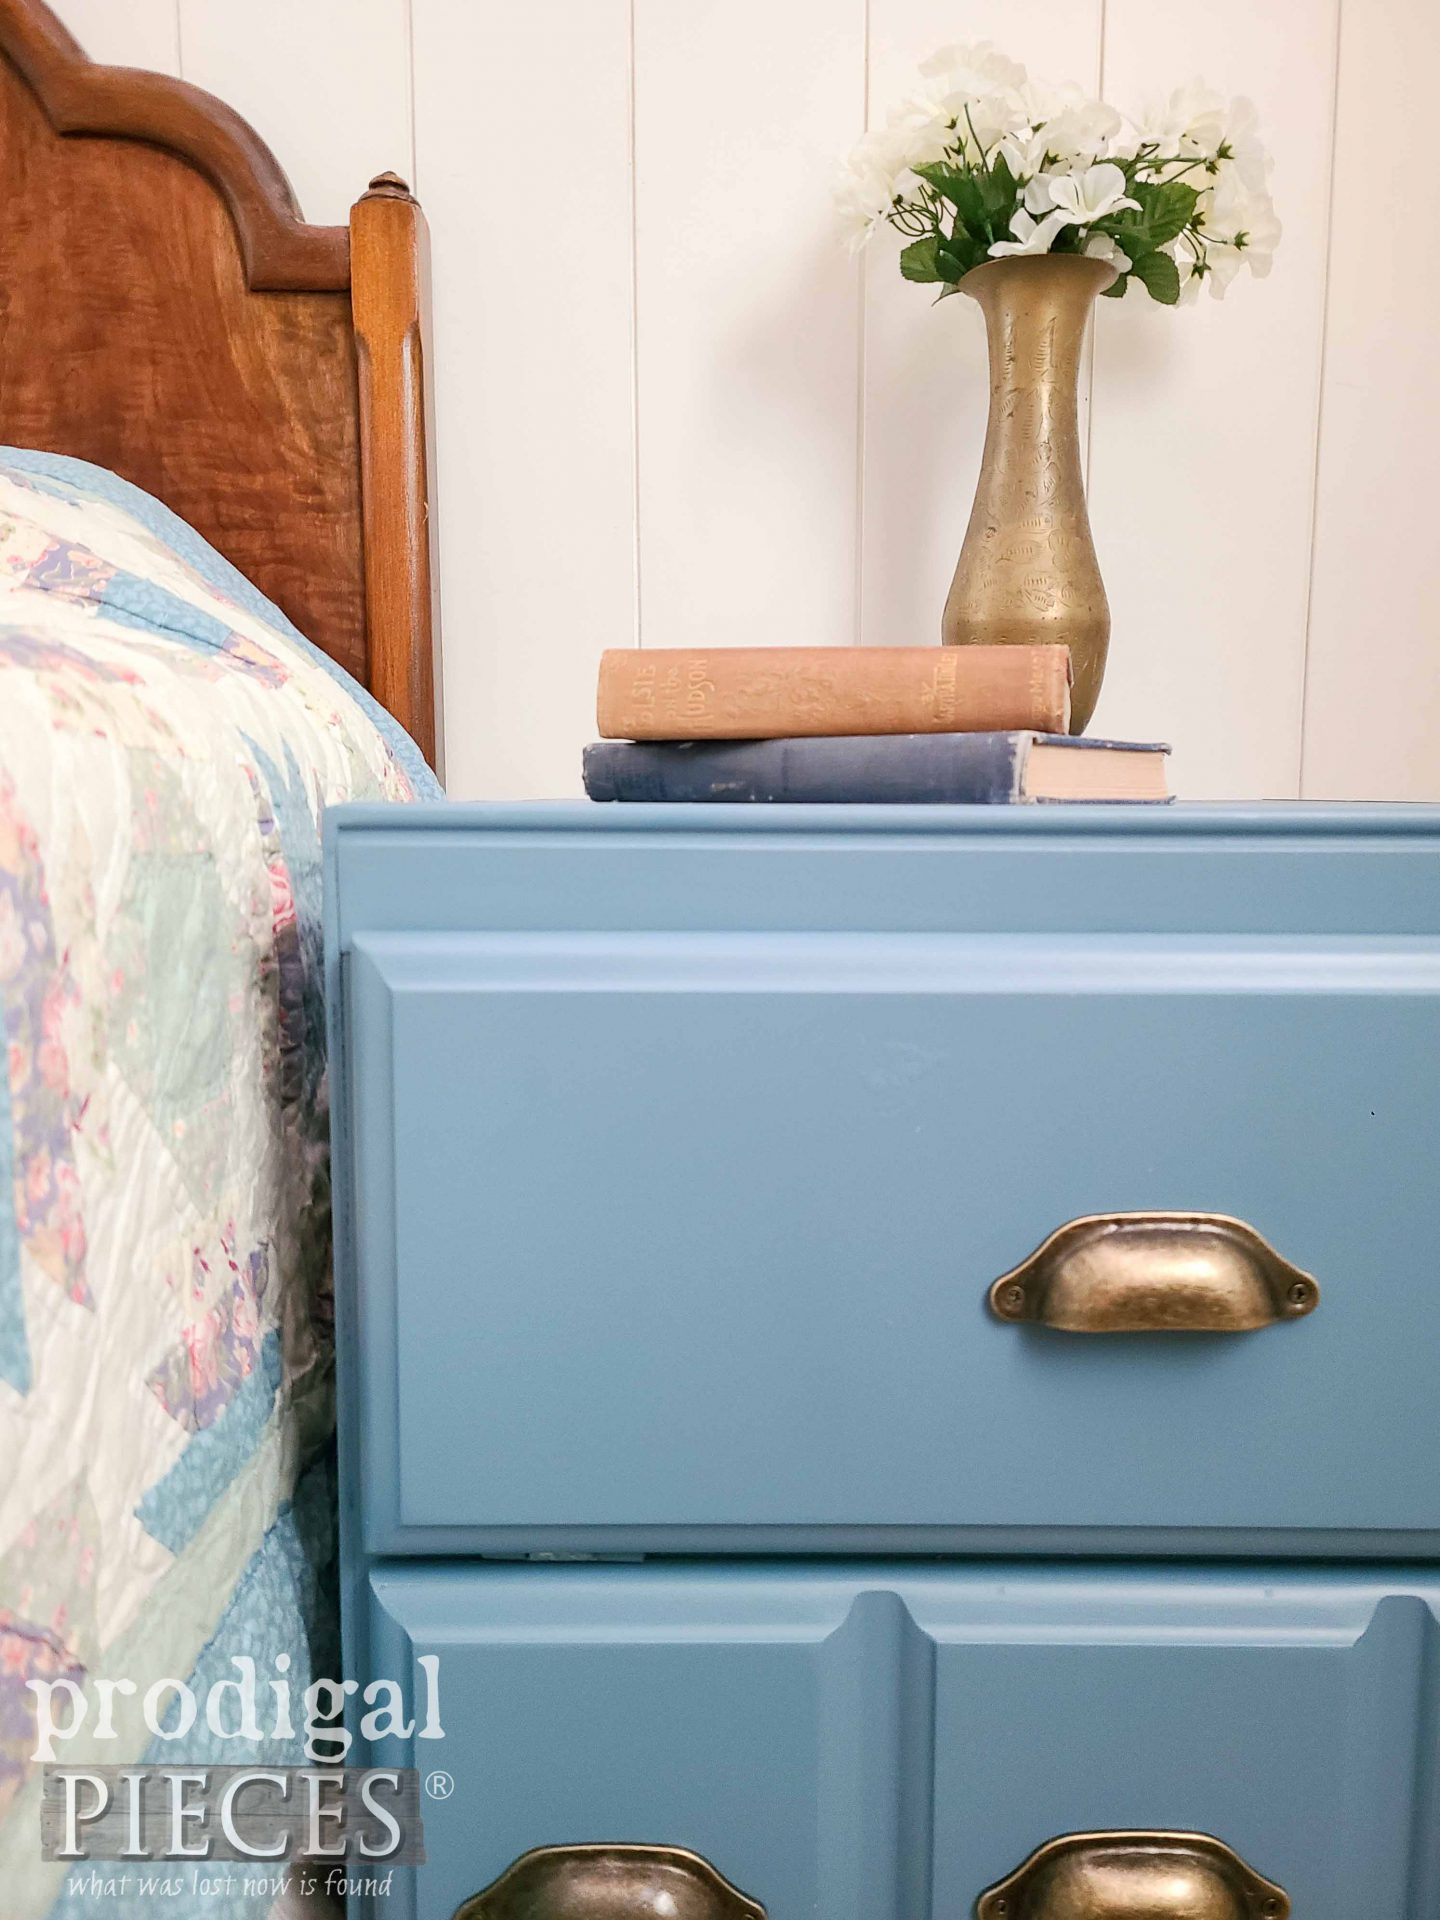 Blue Chest Cabinet Side Table with Antique Brass Bin Pulls by Larissa of Prodigal Pieces   prodigalpieces.com #prodigalpieces #diy #furniture #home #blue